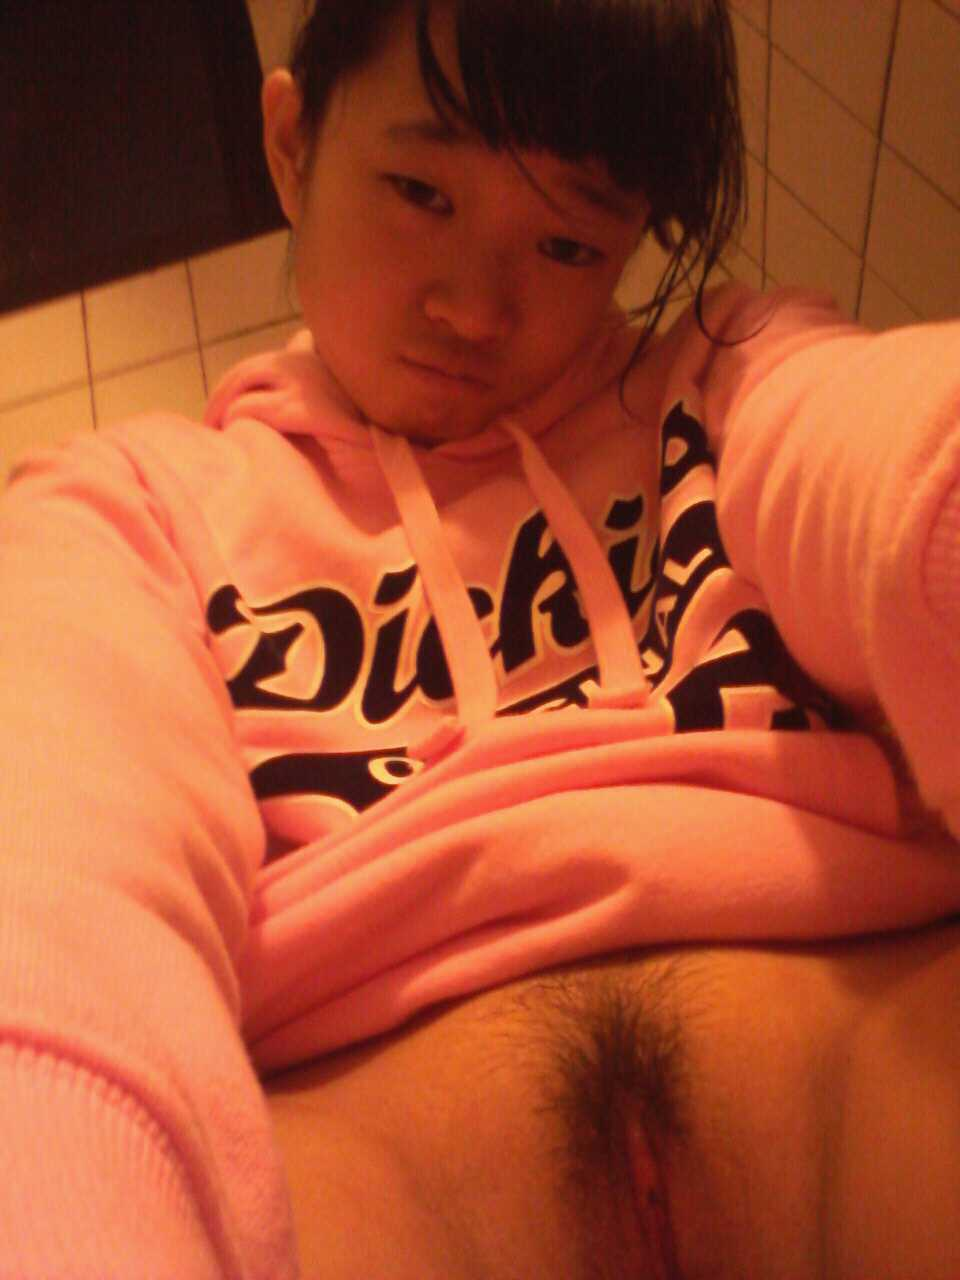 Korea Virgin Picture 102